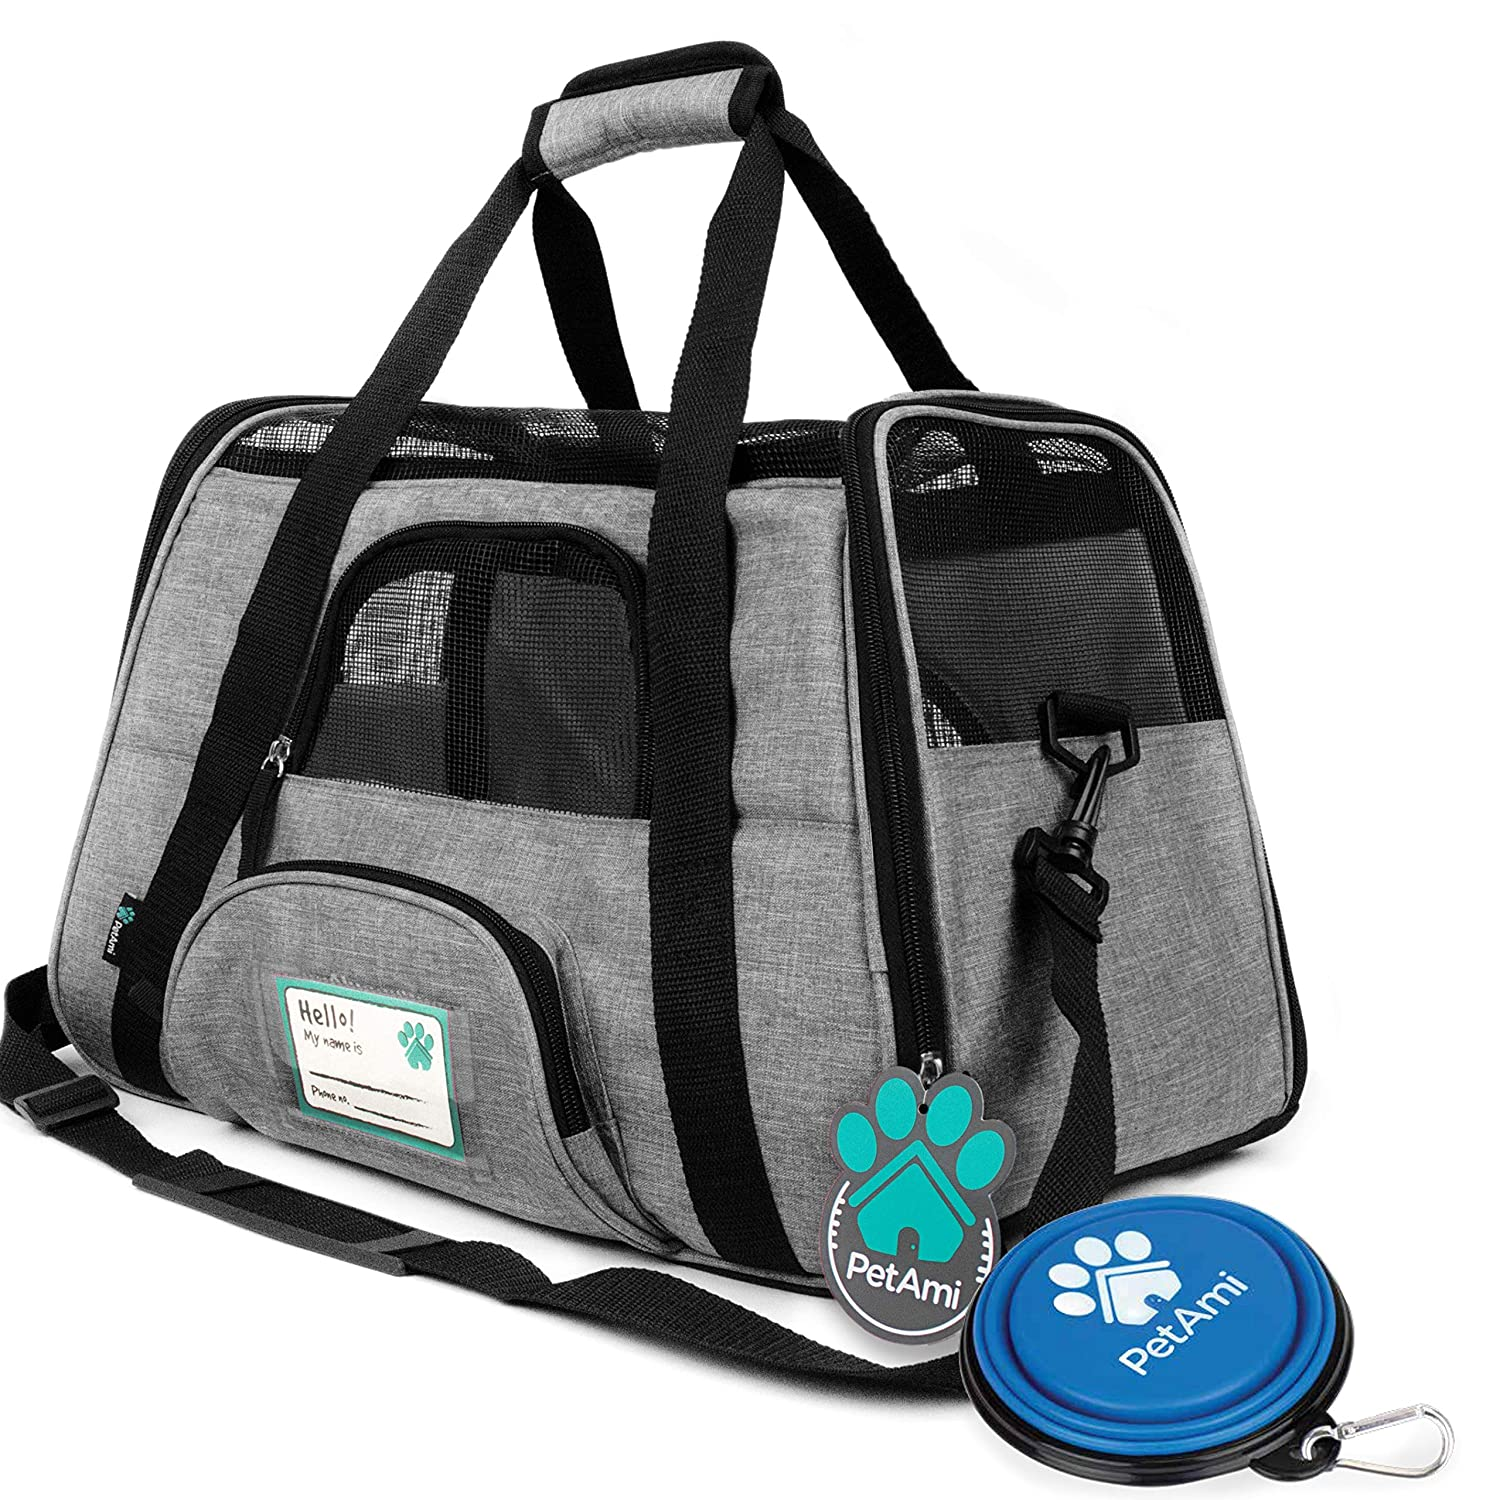 PetAmi Premium Airline Approved Soft-Sided Pet Travel Carrier